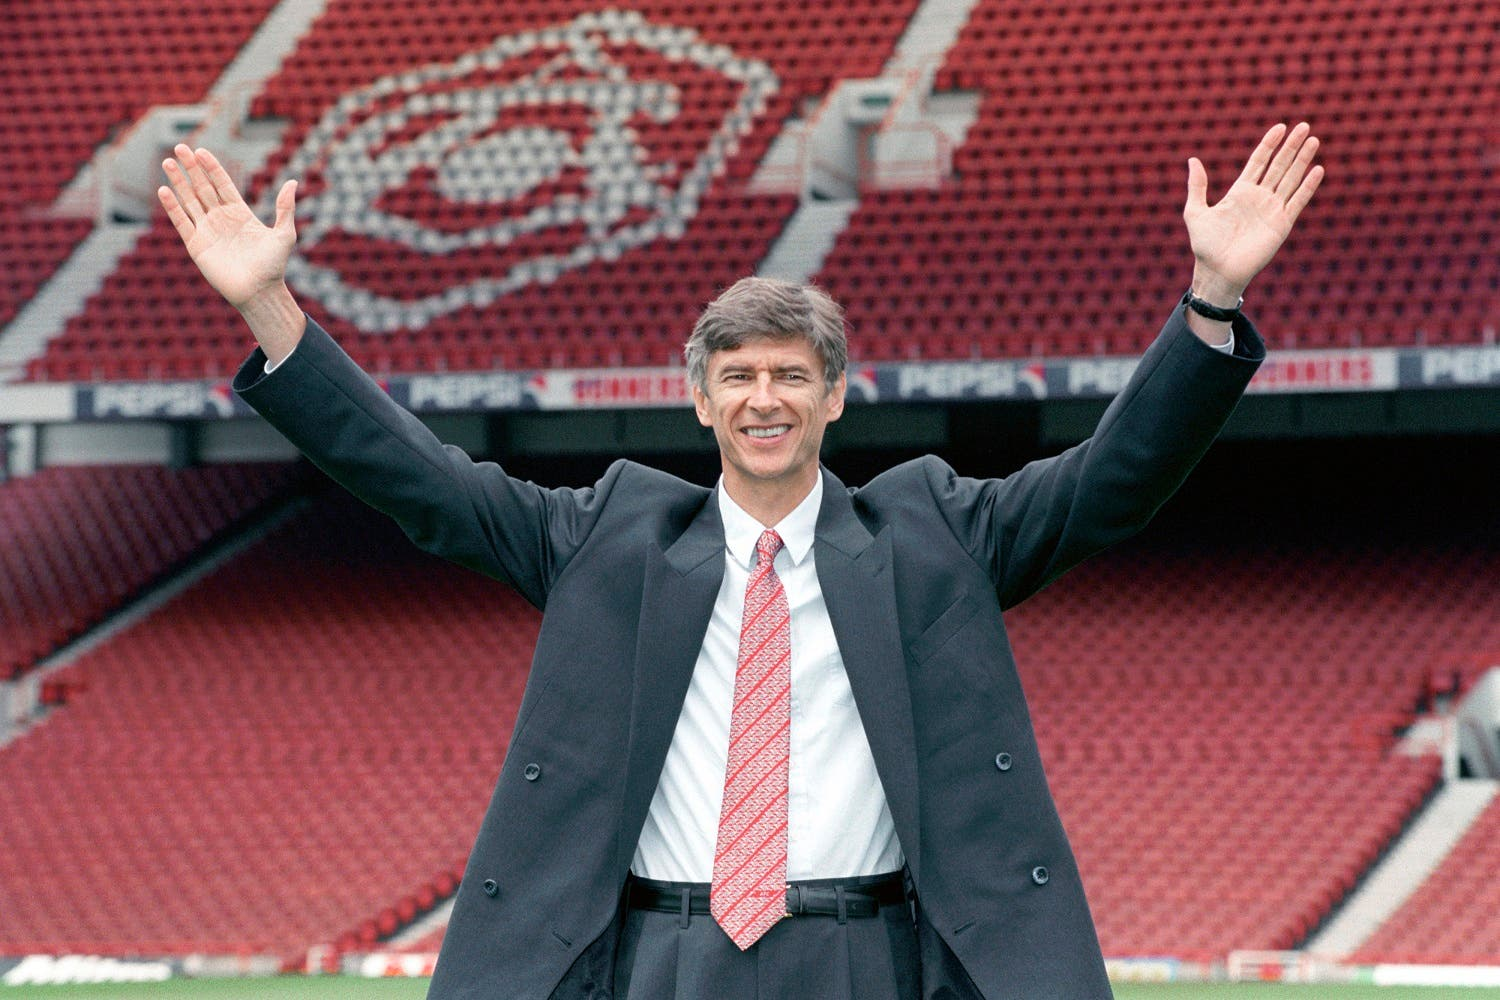 In this Sept. 22, 1996 file photo new Arsenal manager Arsene Wenger gestures following a press conference at Highbury Stadium, London. (AP)